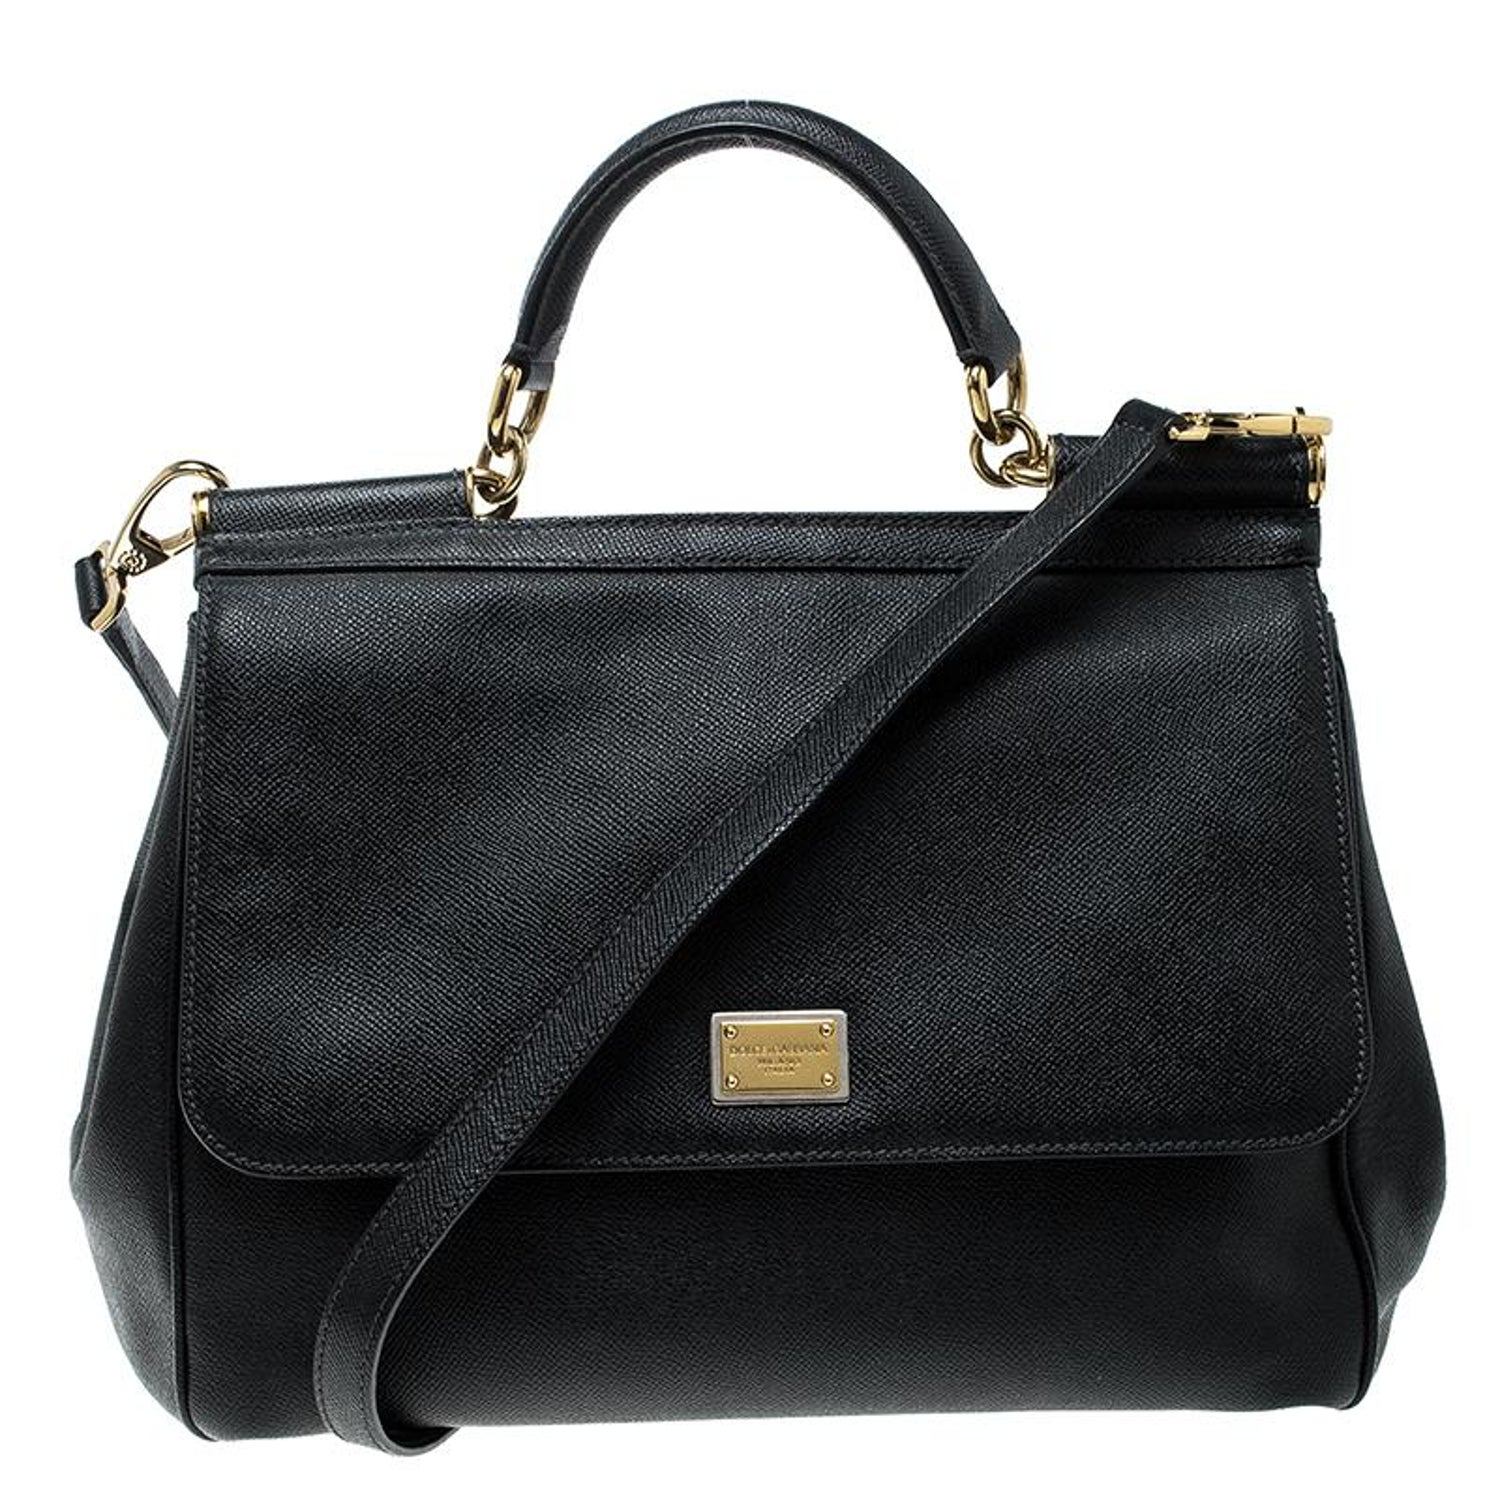 Dolce and Gabbana Black Leather Large Miss Sicily Top Handle Bag at 1stdibs 47dcab438ed57